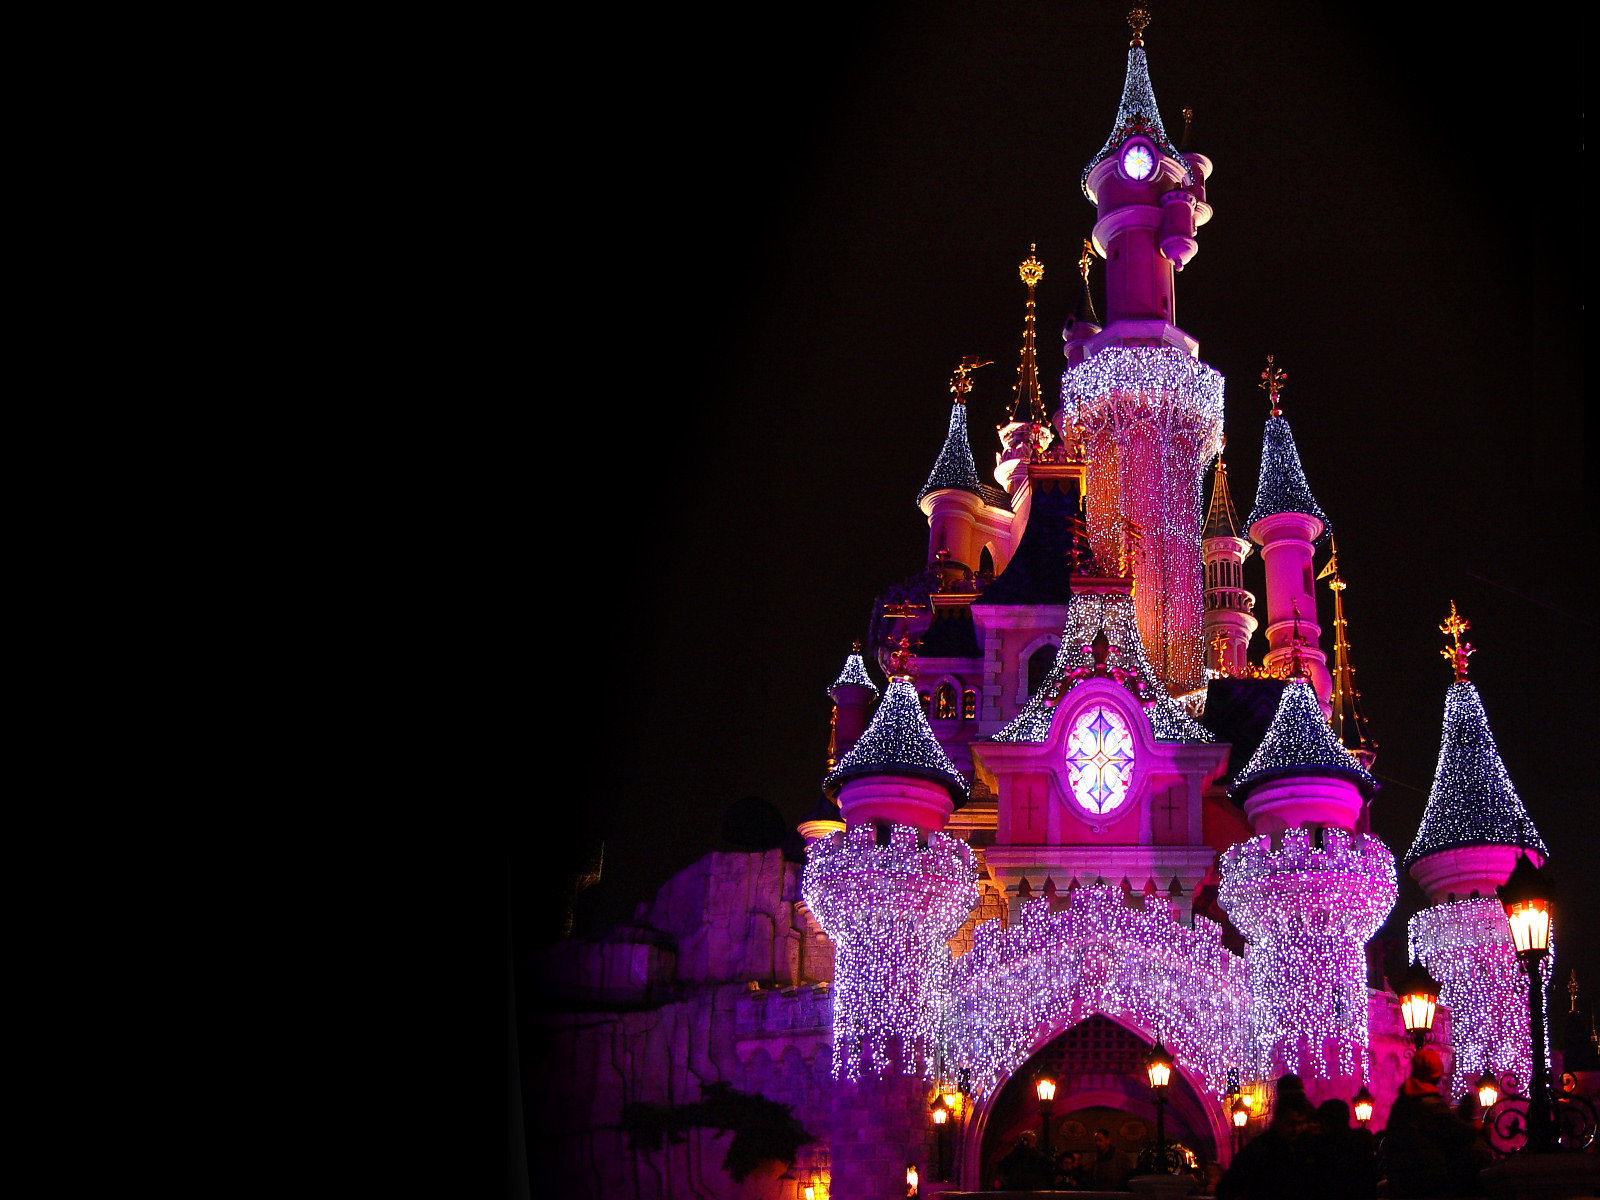 Disney Desktop HD Wallpaper 1600x1200